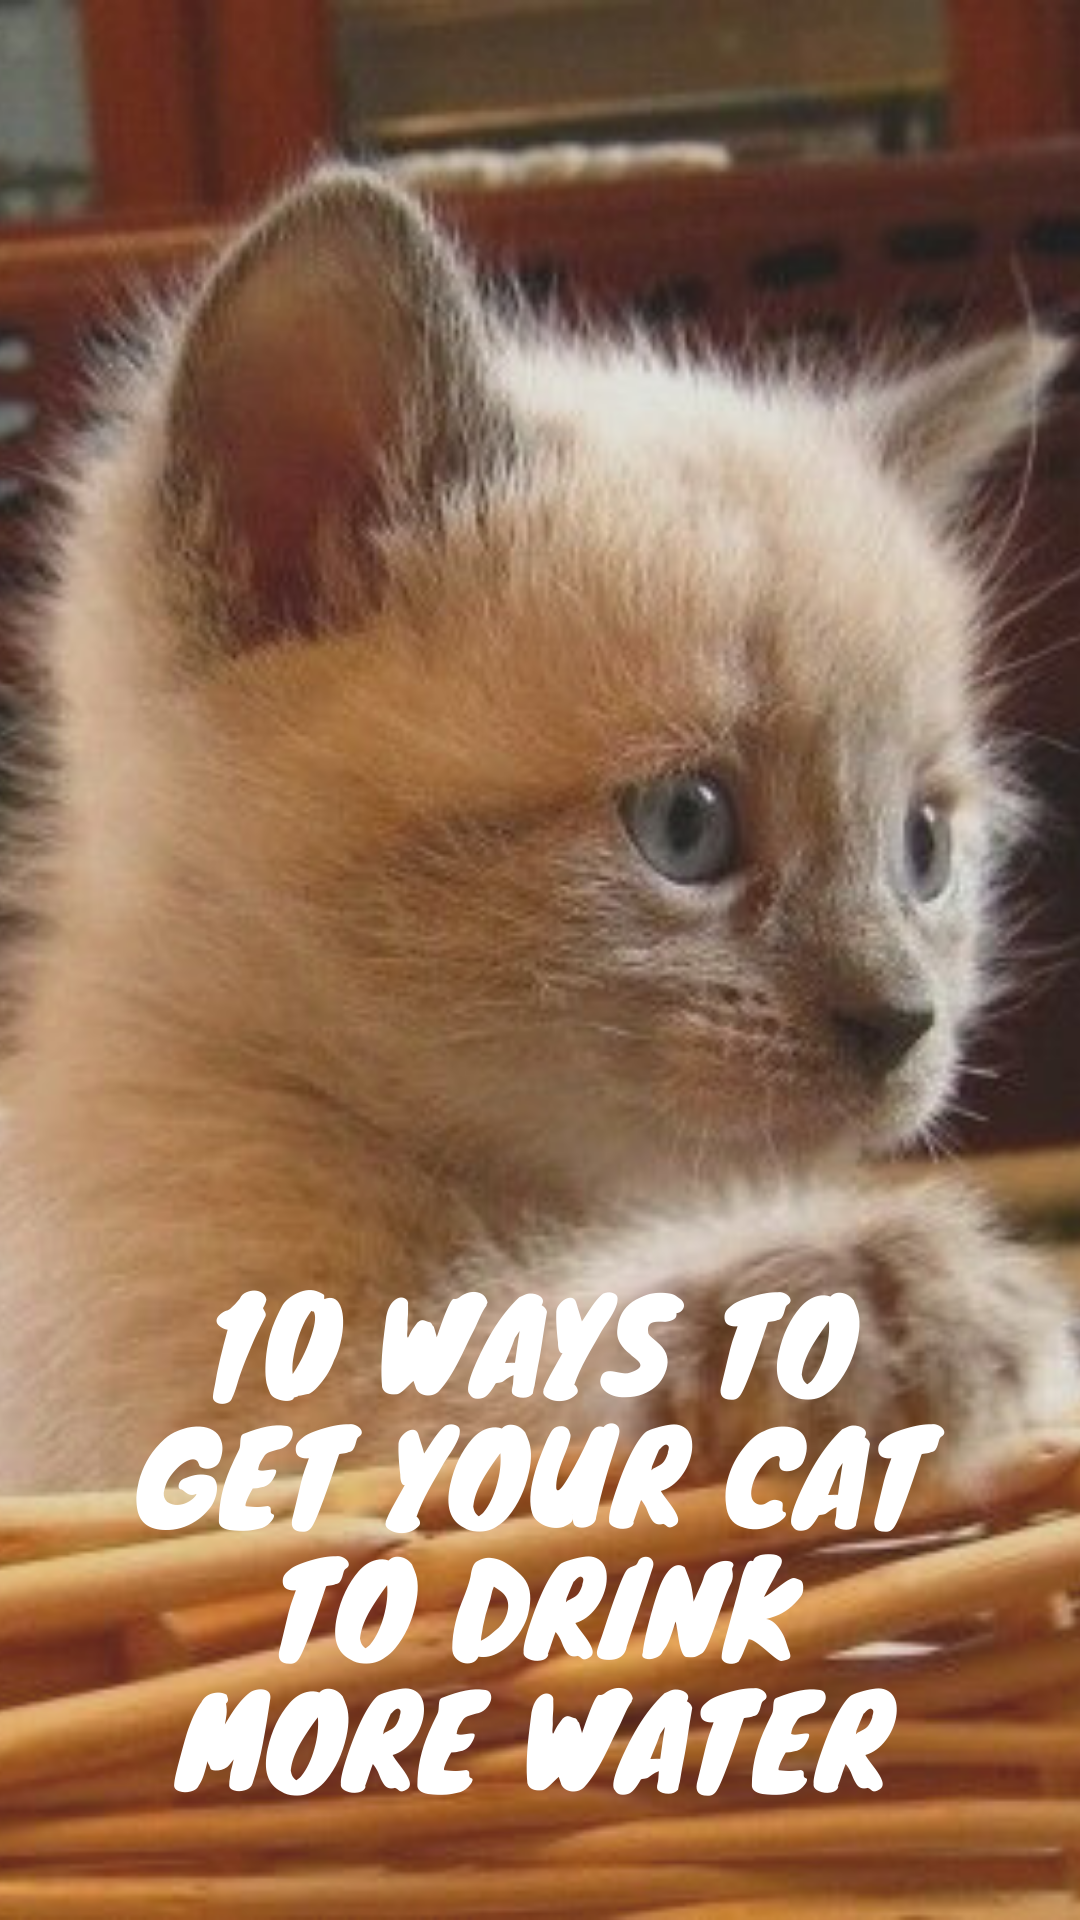 10 Ways to Get Your Cat to Drink More Water Cats, Pretty